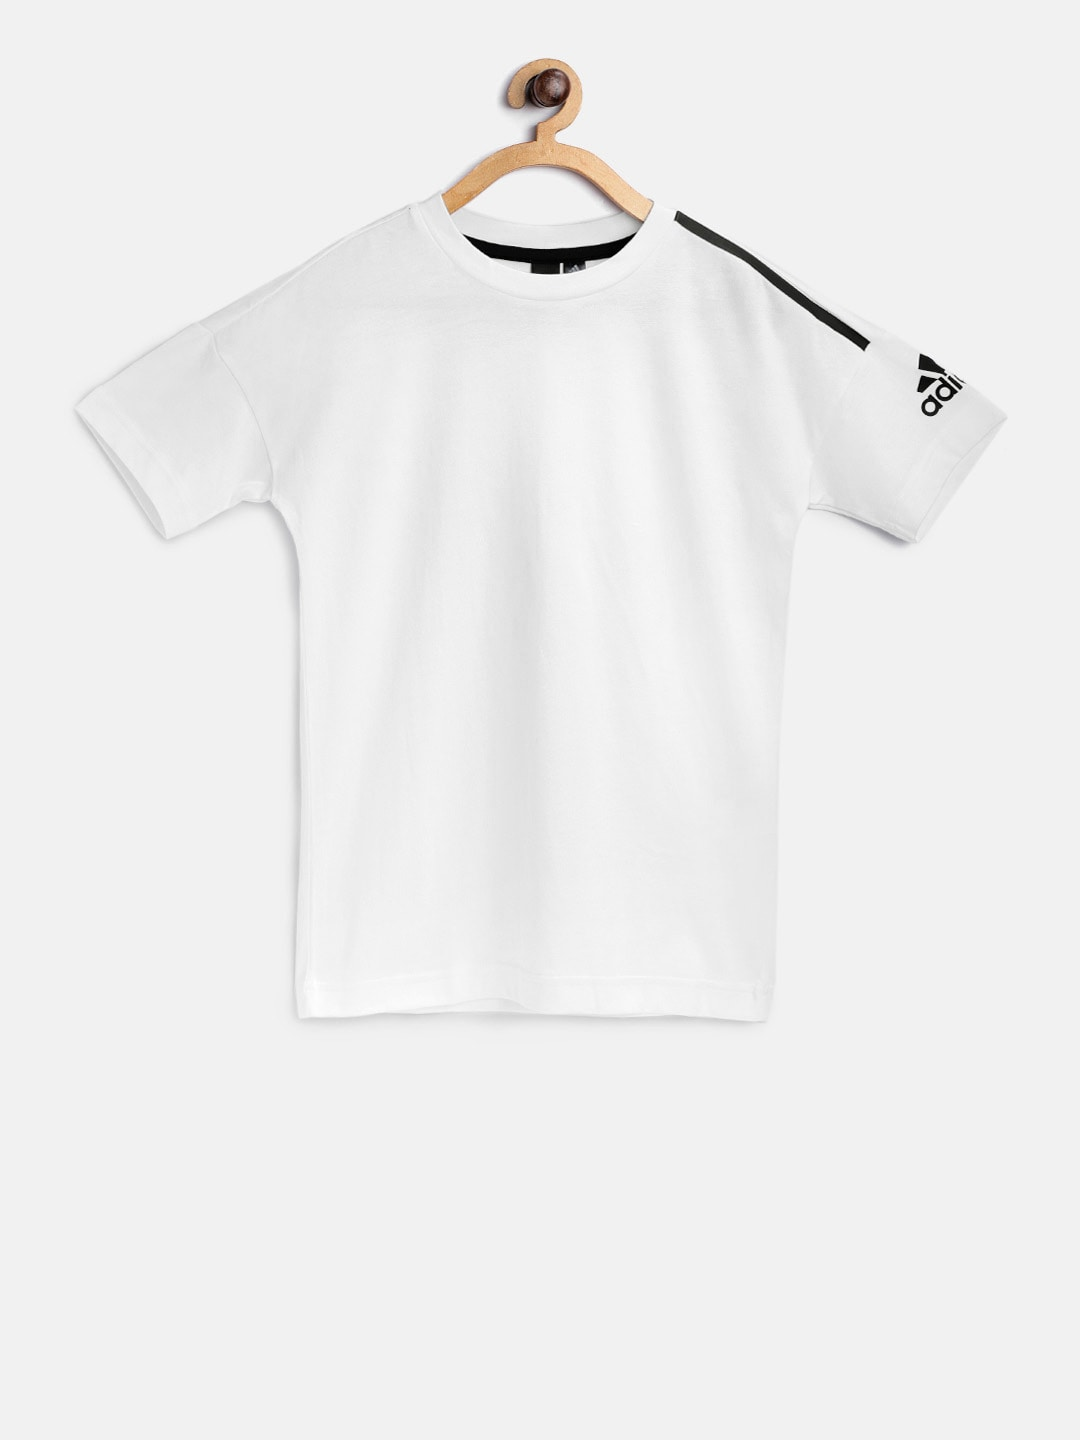 on sale 8ddc9 2a4a7 Boys Adidas Tshirts - Buy Boys Adidas Tshirts online in India